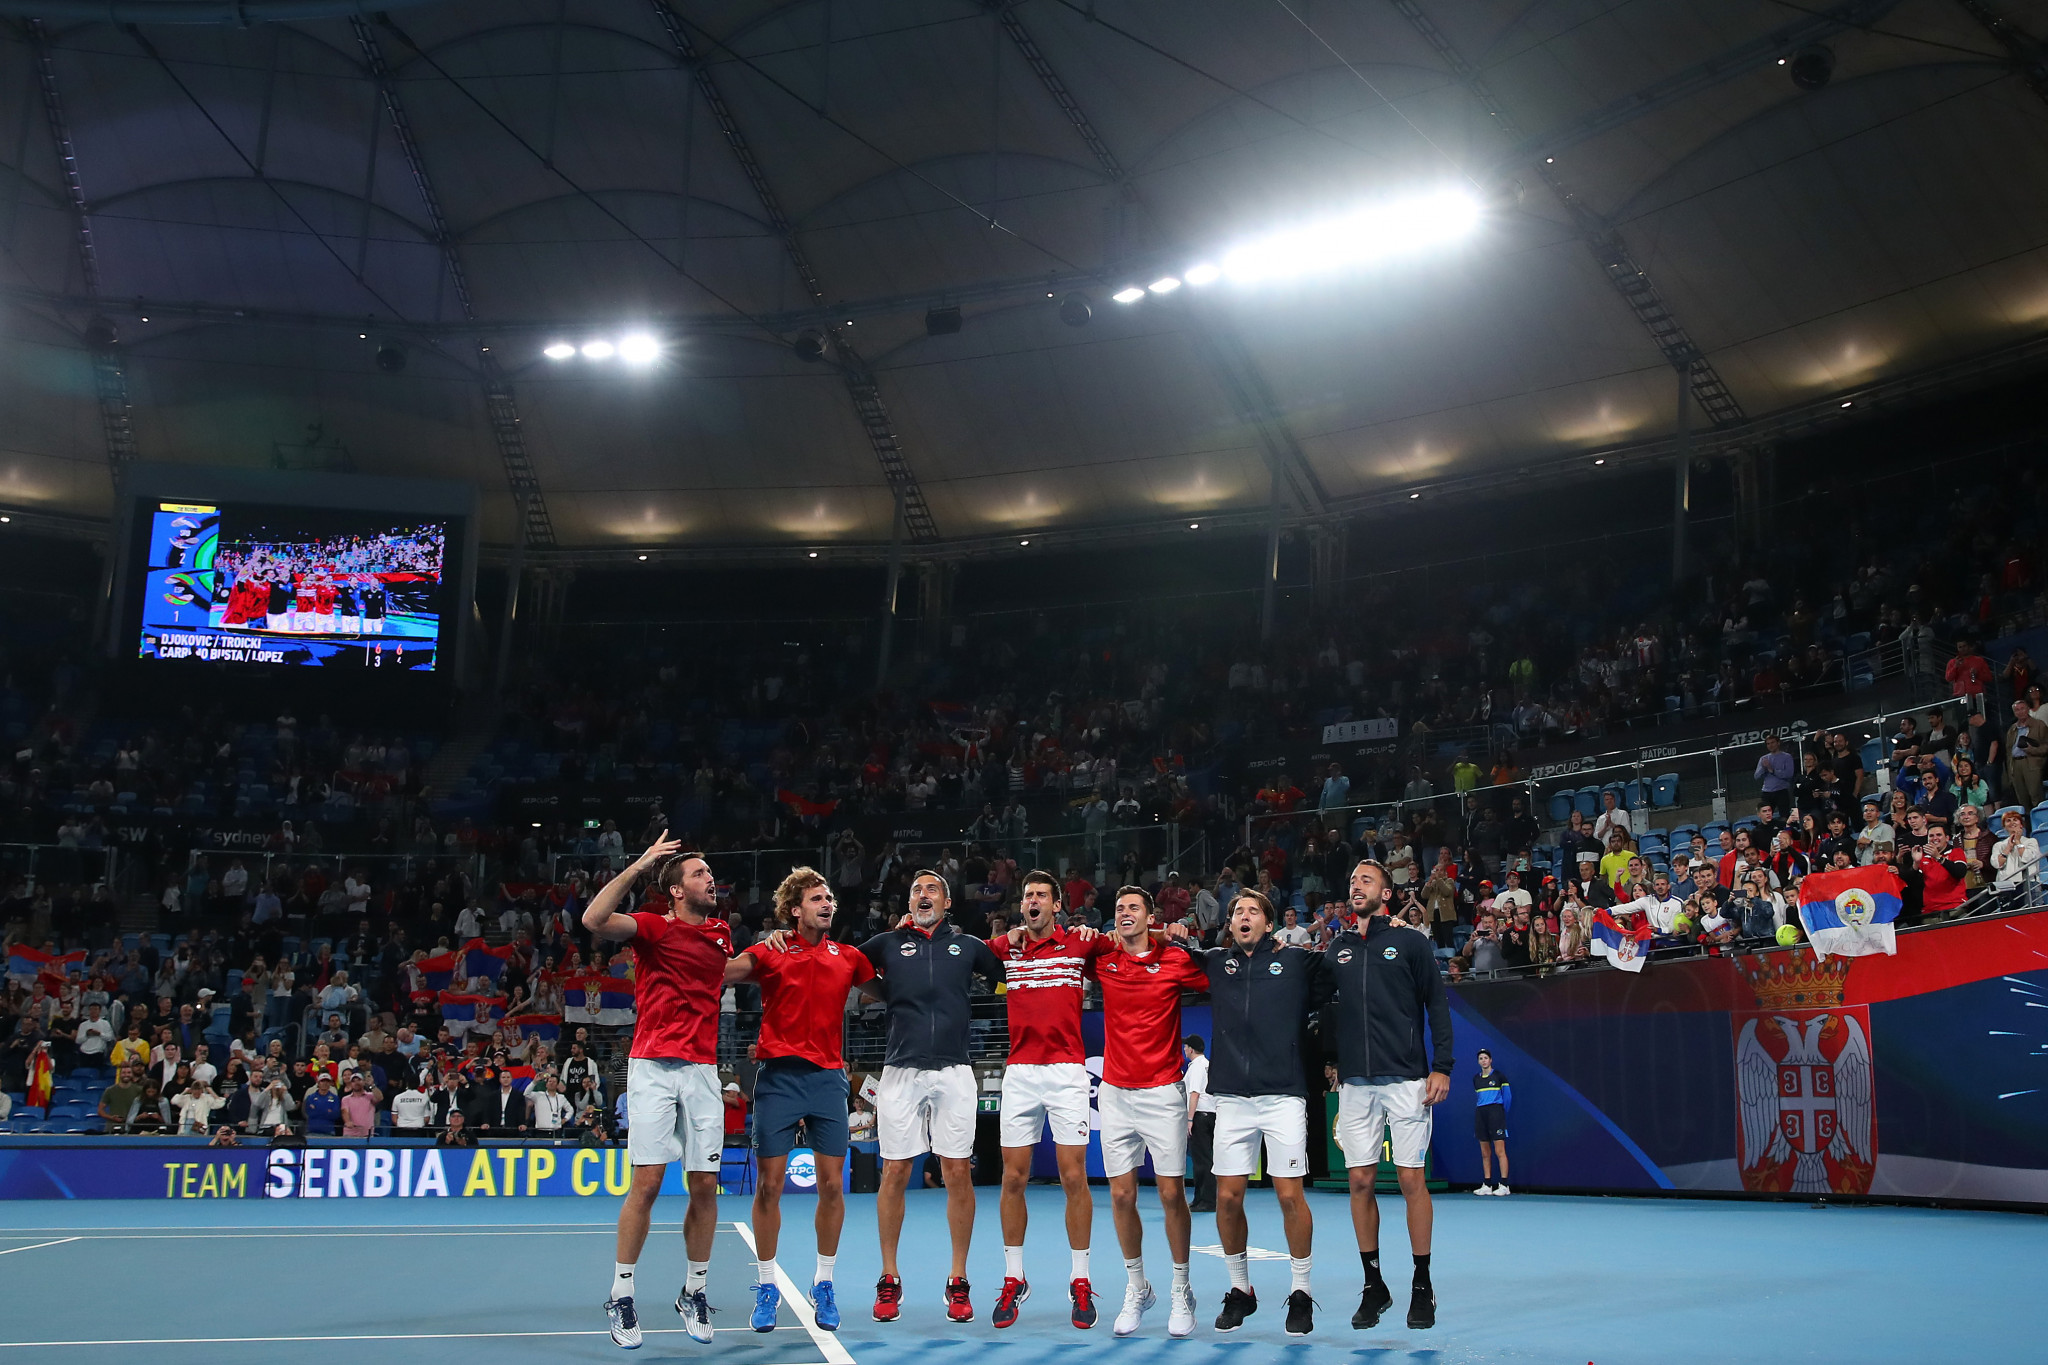 Serbia won the decisive doubles rubber to win the tournament ©Getty Images